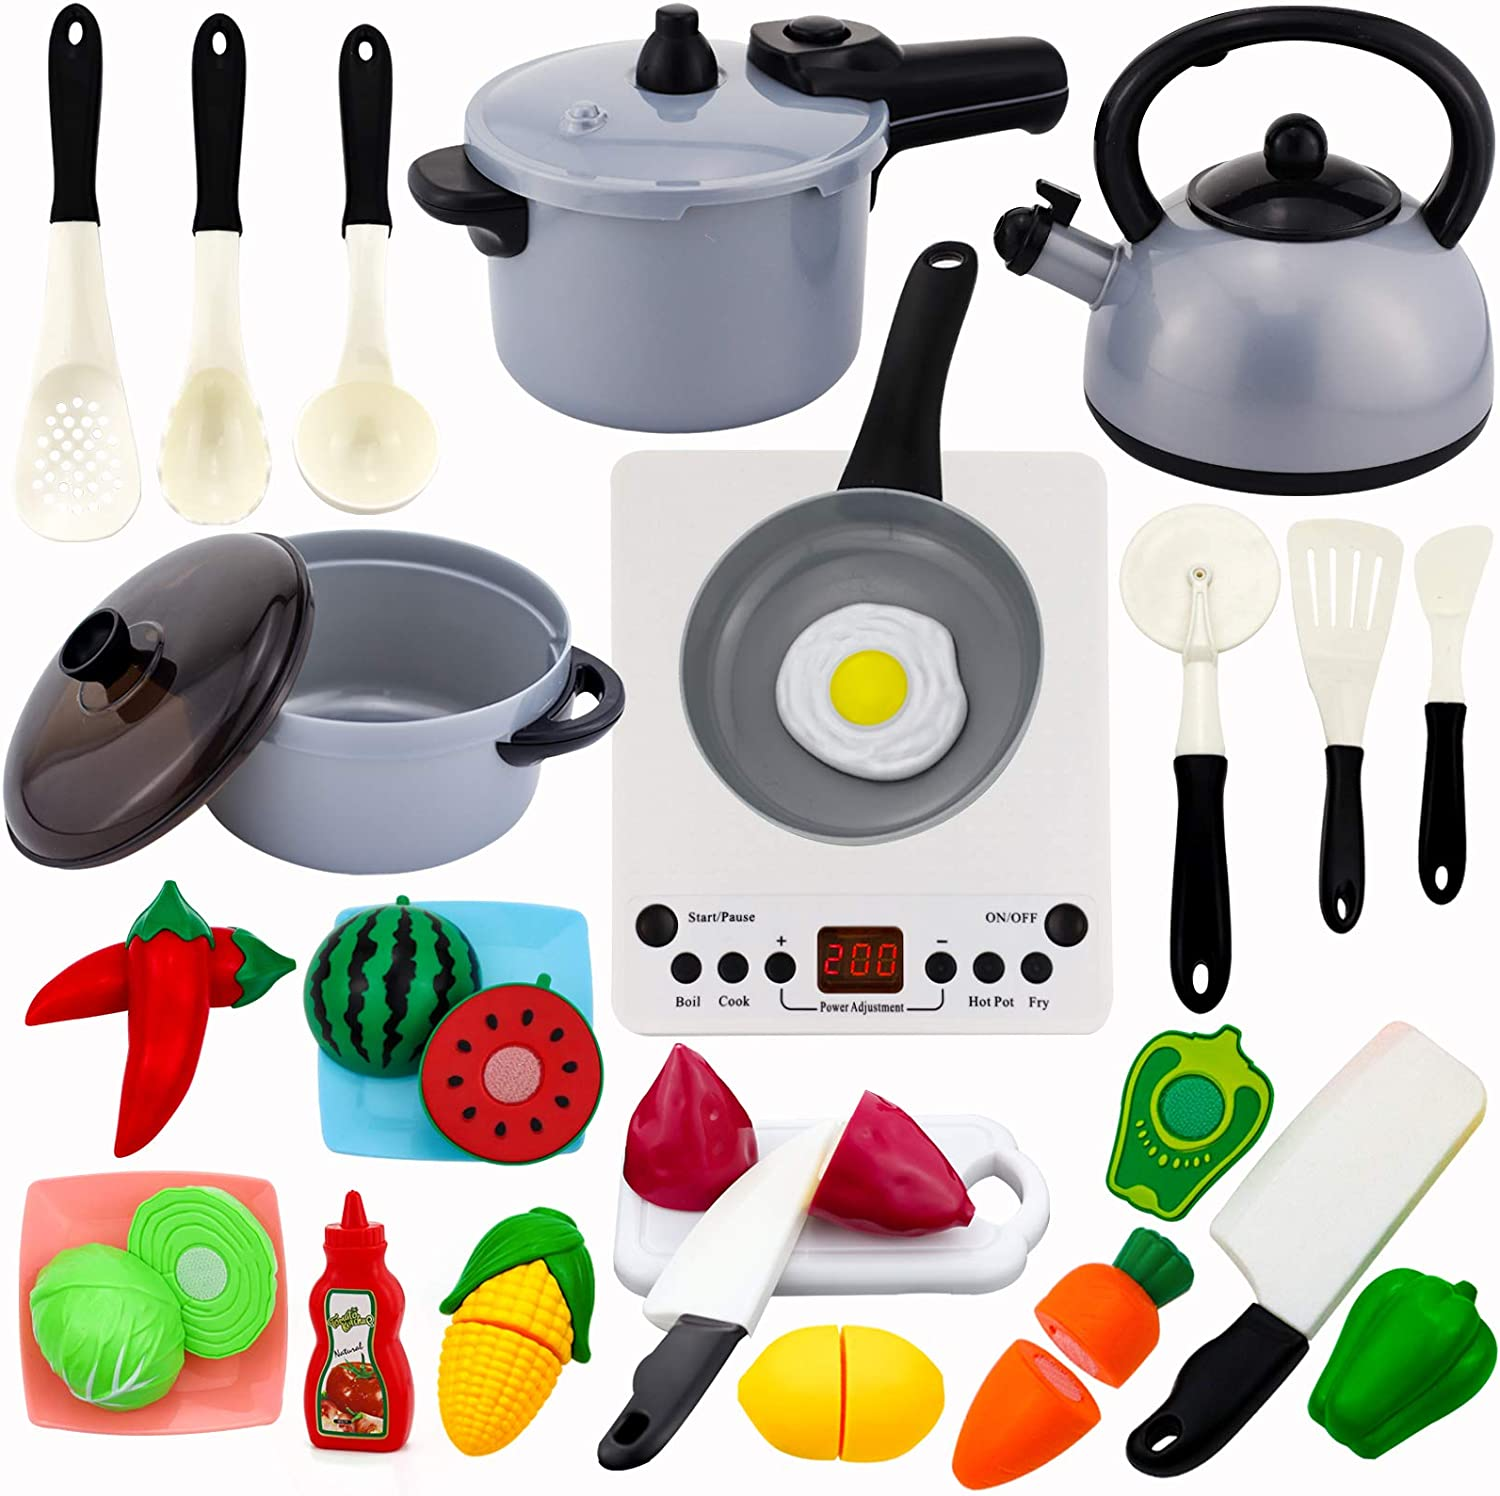 Eazyco 26Pcs Play Kitchen Set for Kids, Pretend Cooking Toys Cookware Playset with Electronic Induction Cooktop and Pressure Cooker and Utensils, Cut Play Food, Learning Gifts for Toddlers Girls Boys